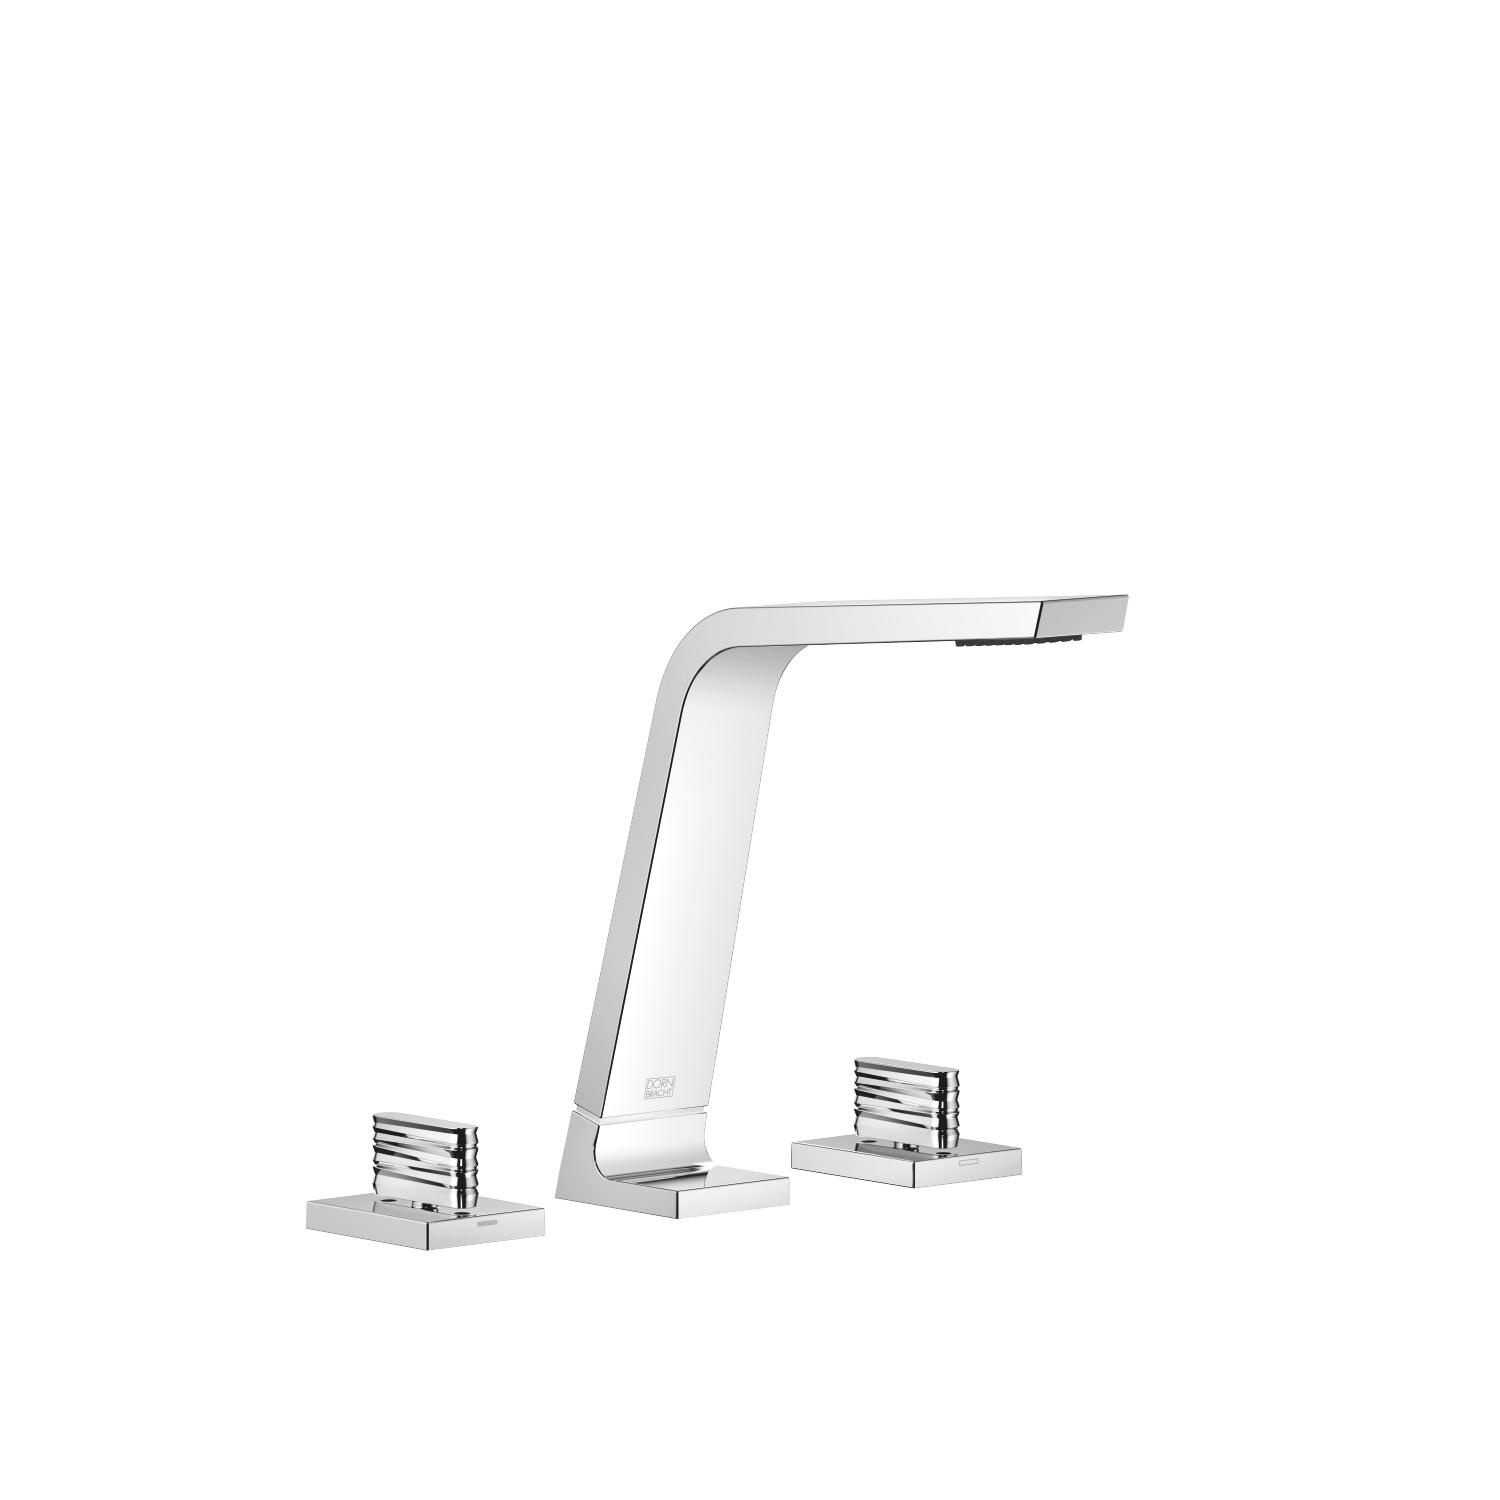 Three-hole basin mixer without pop-up waste - polished chrome - 13 715 705-00 + 20 005 705-00 + 20 005 706-00